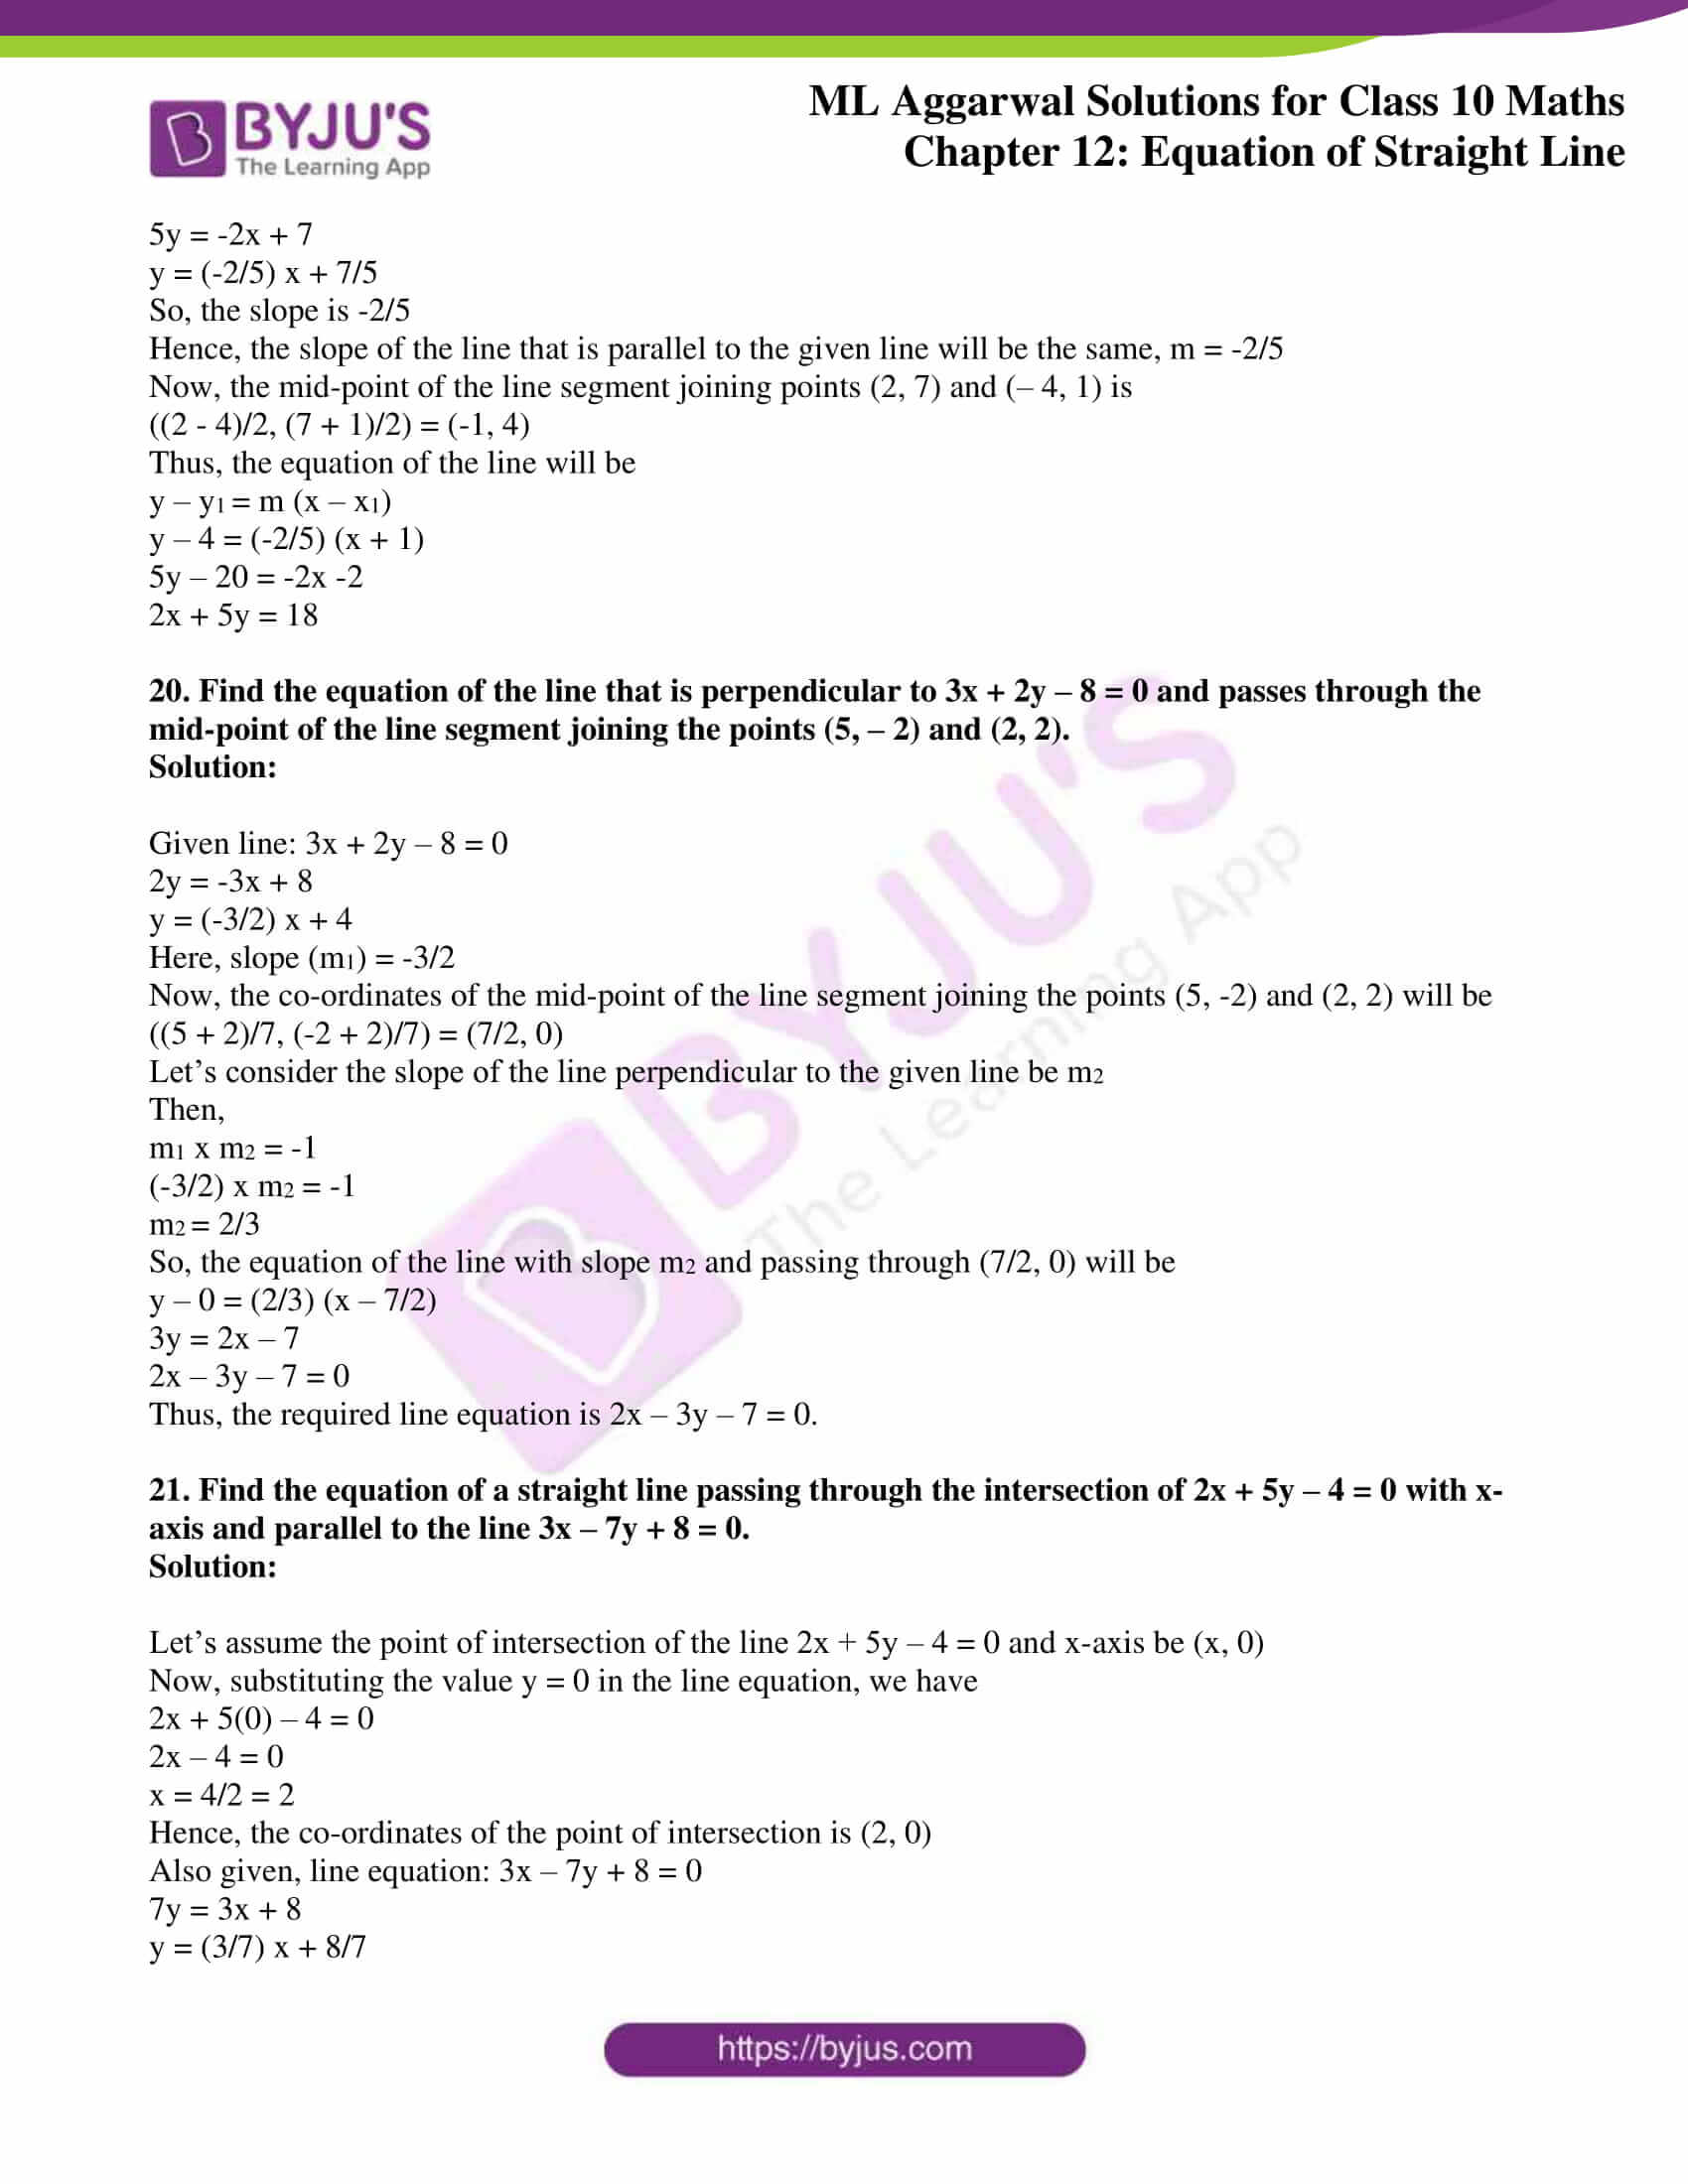 ml aggarwal solutions for class 10 maths chapter 12 23